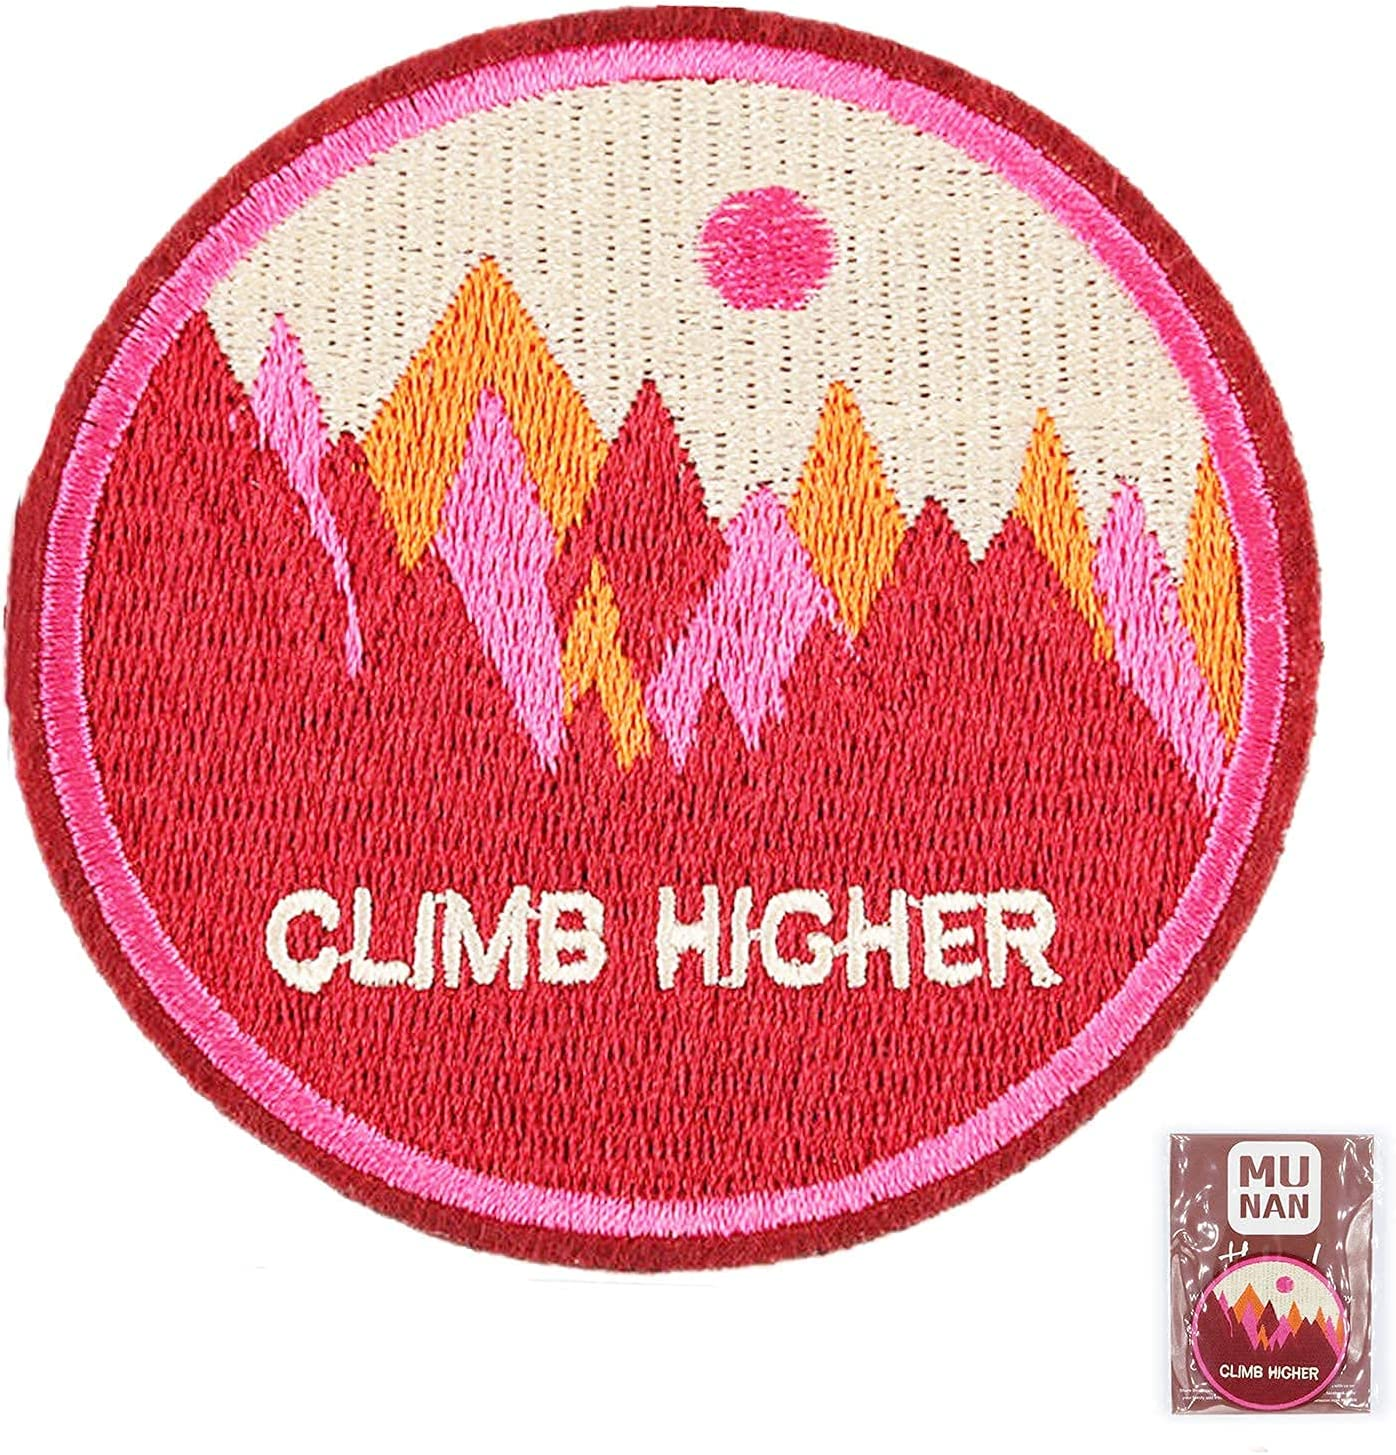 Easy-to-use Pink Climb Higher Max 71% OFF Outdoor Adventure Embroidered Applique Patch B